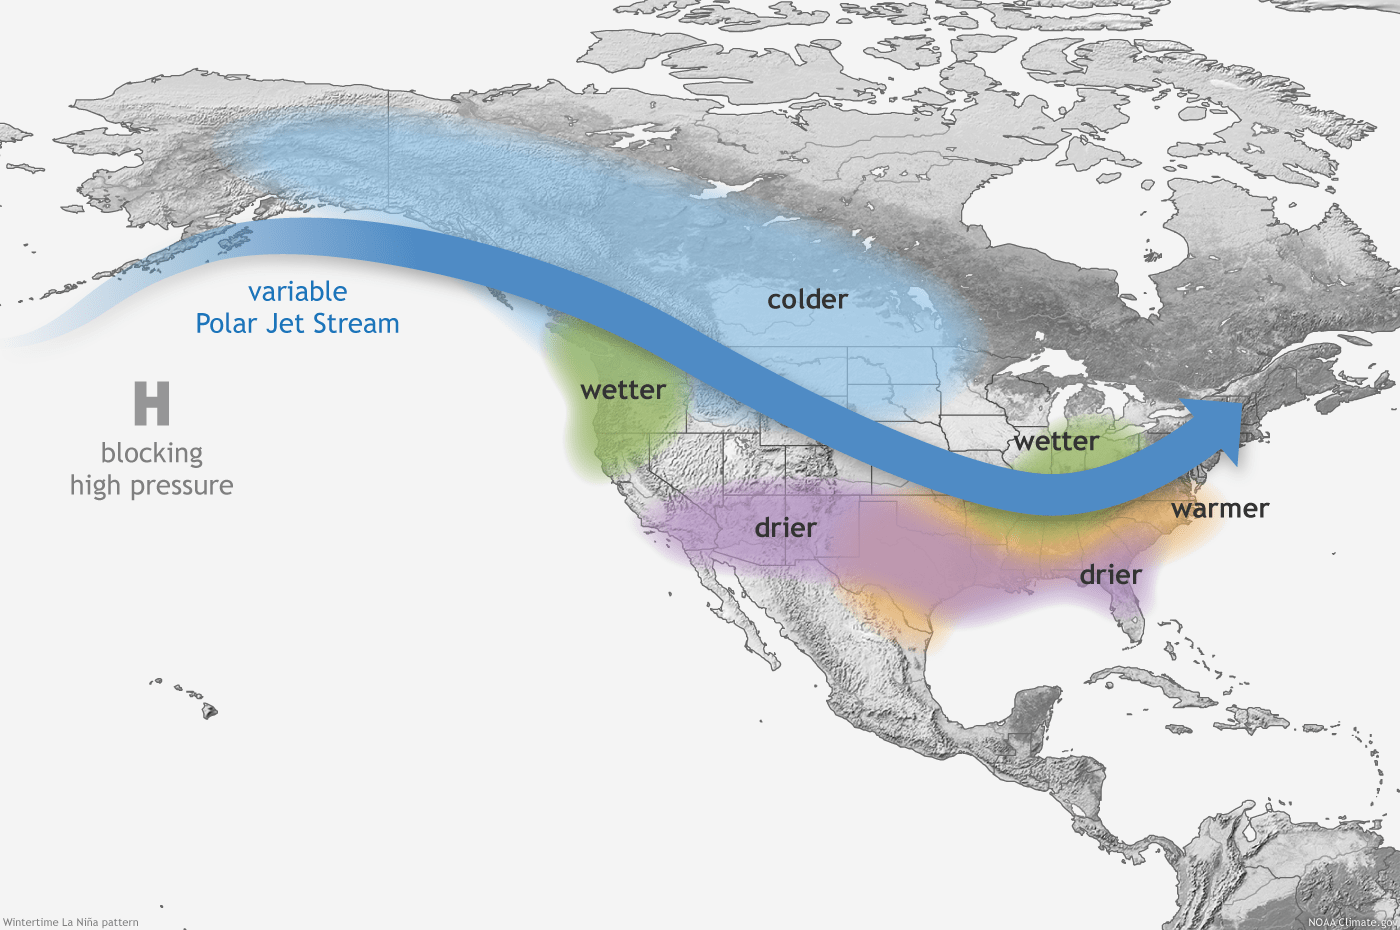 Typical La Nina winter pattern